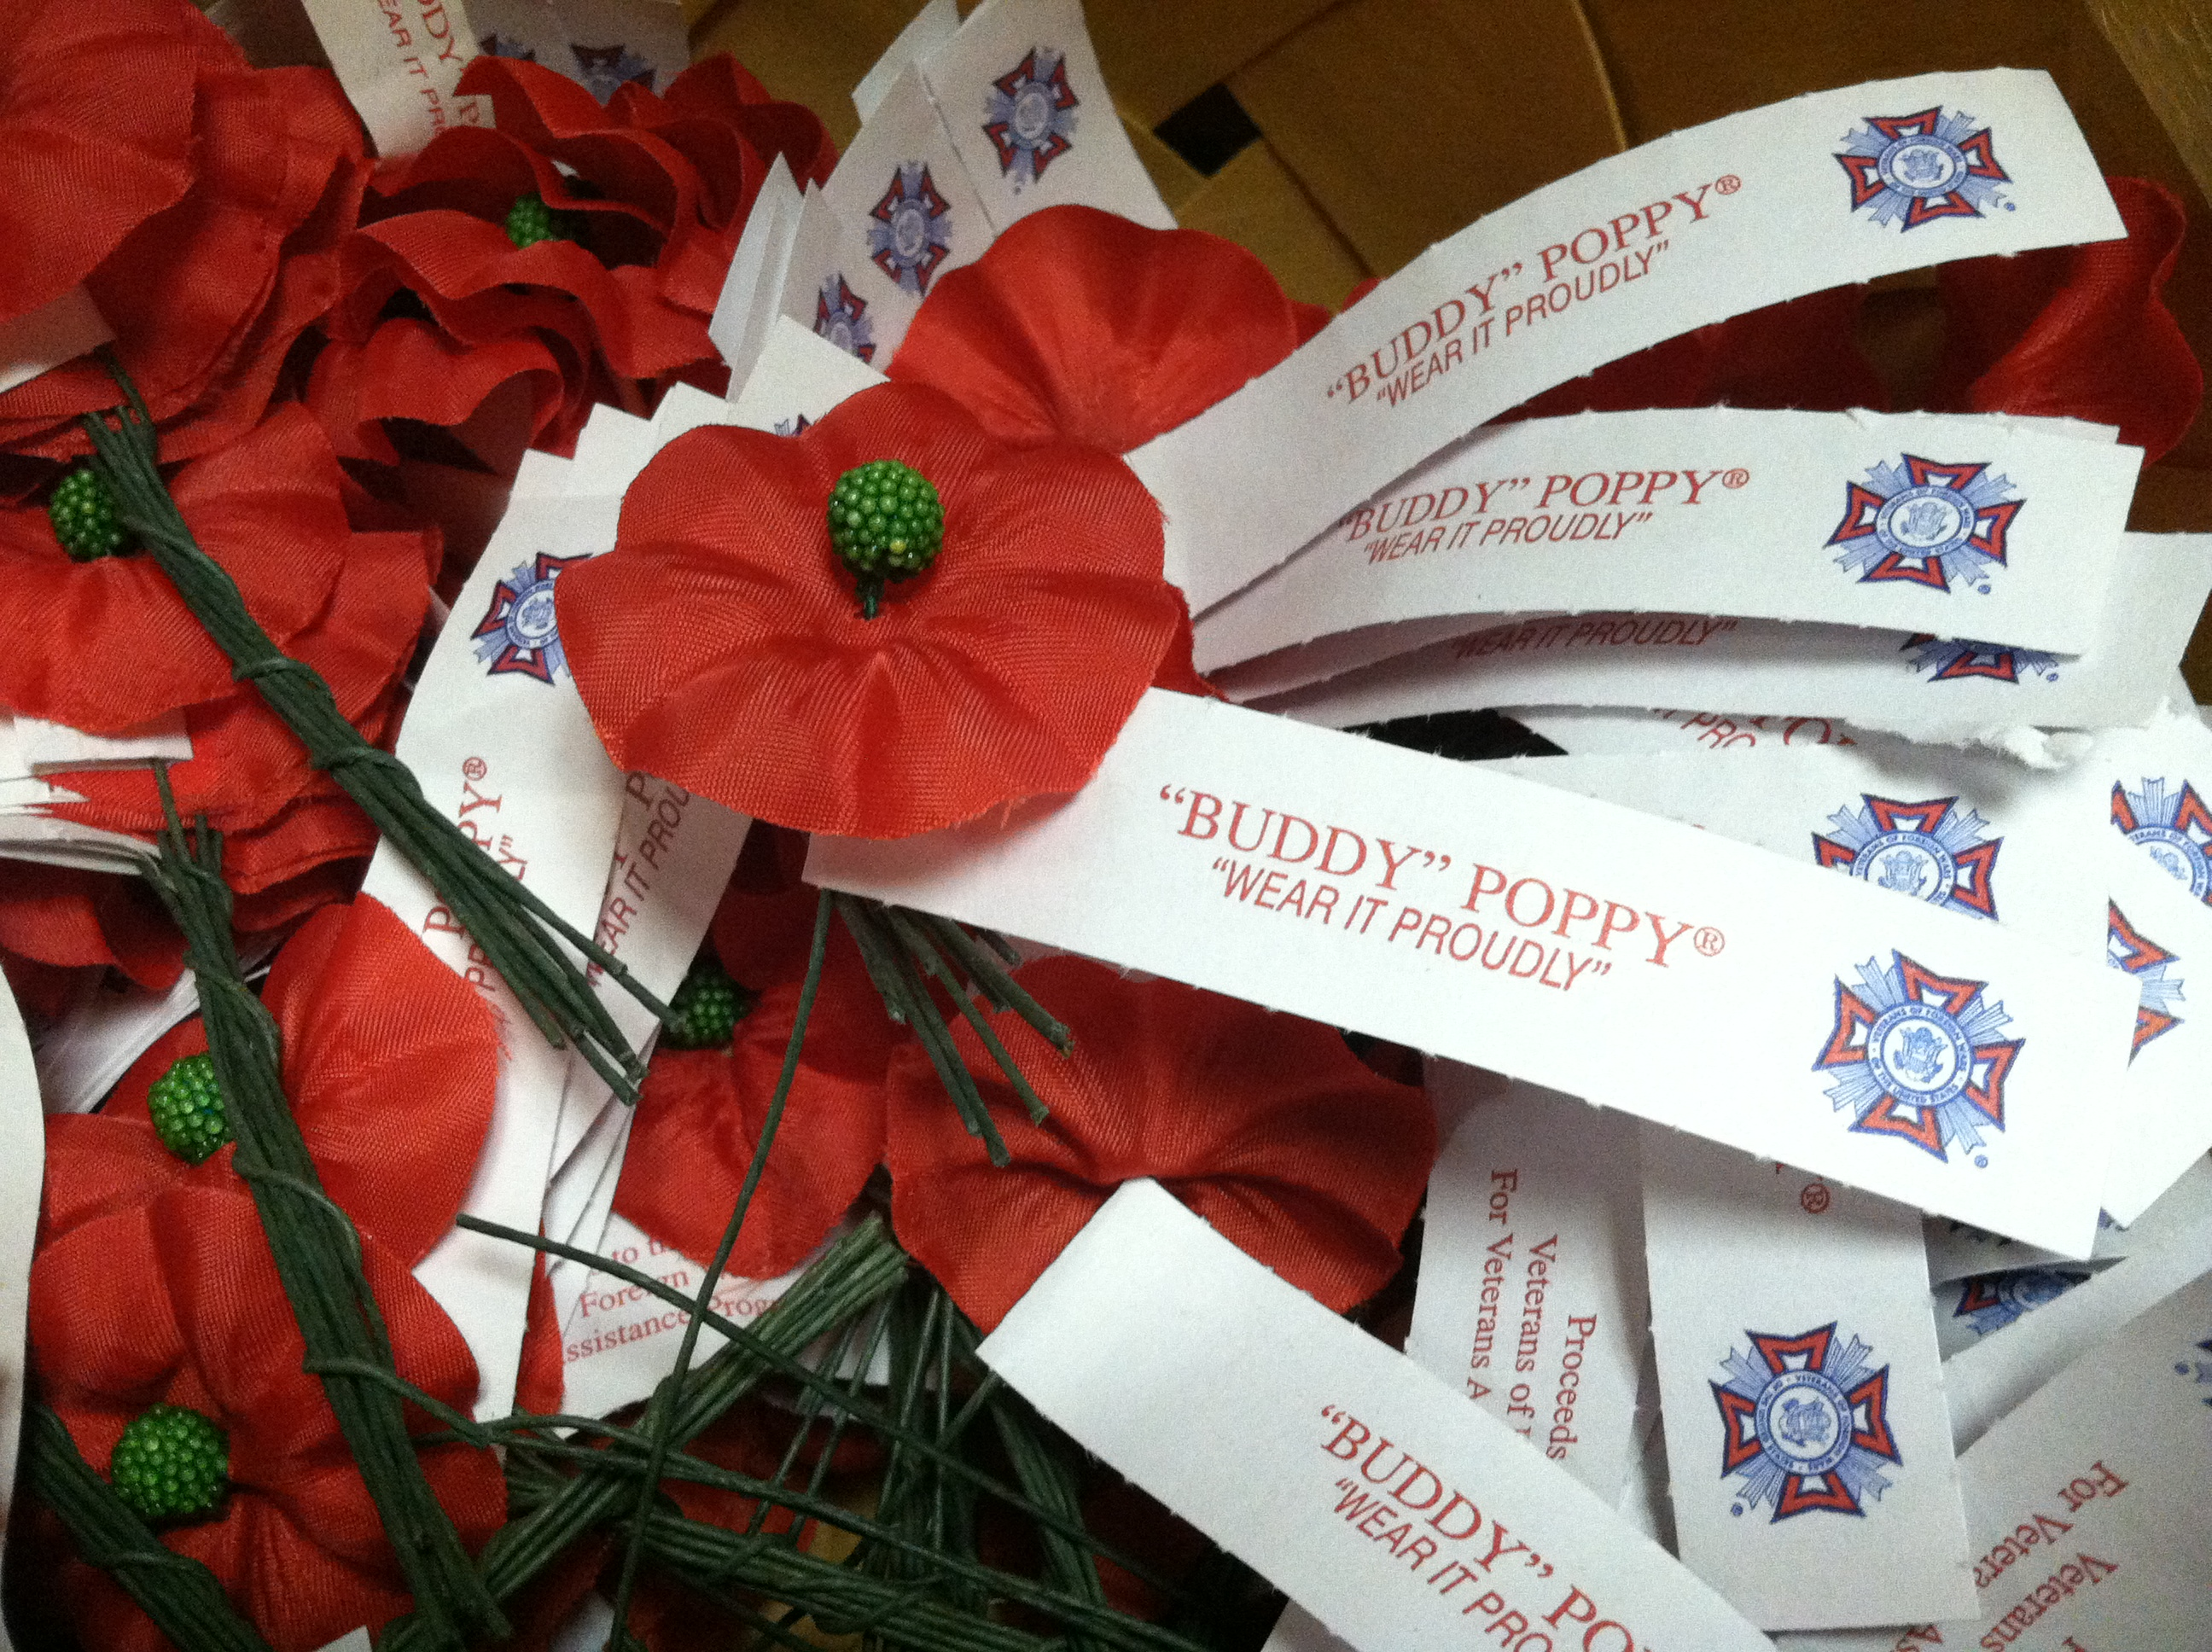 Buddy Poppy Day Volunteering For Veterans Twin Cities Daily Planet